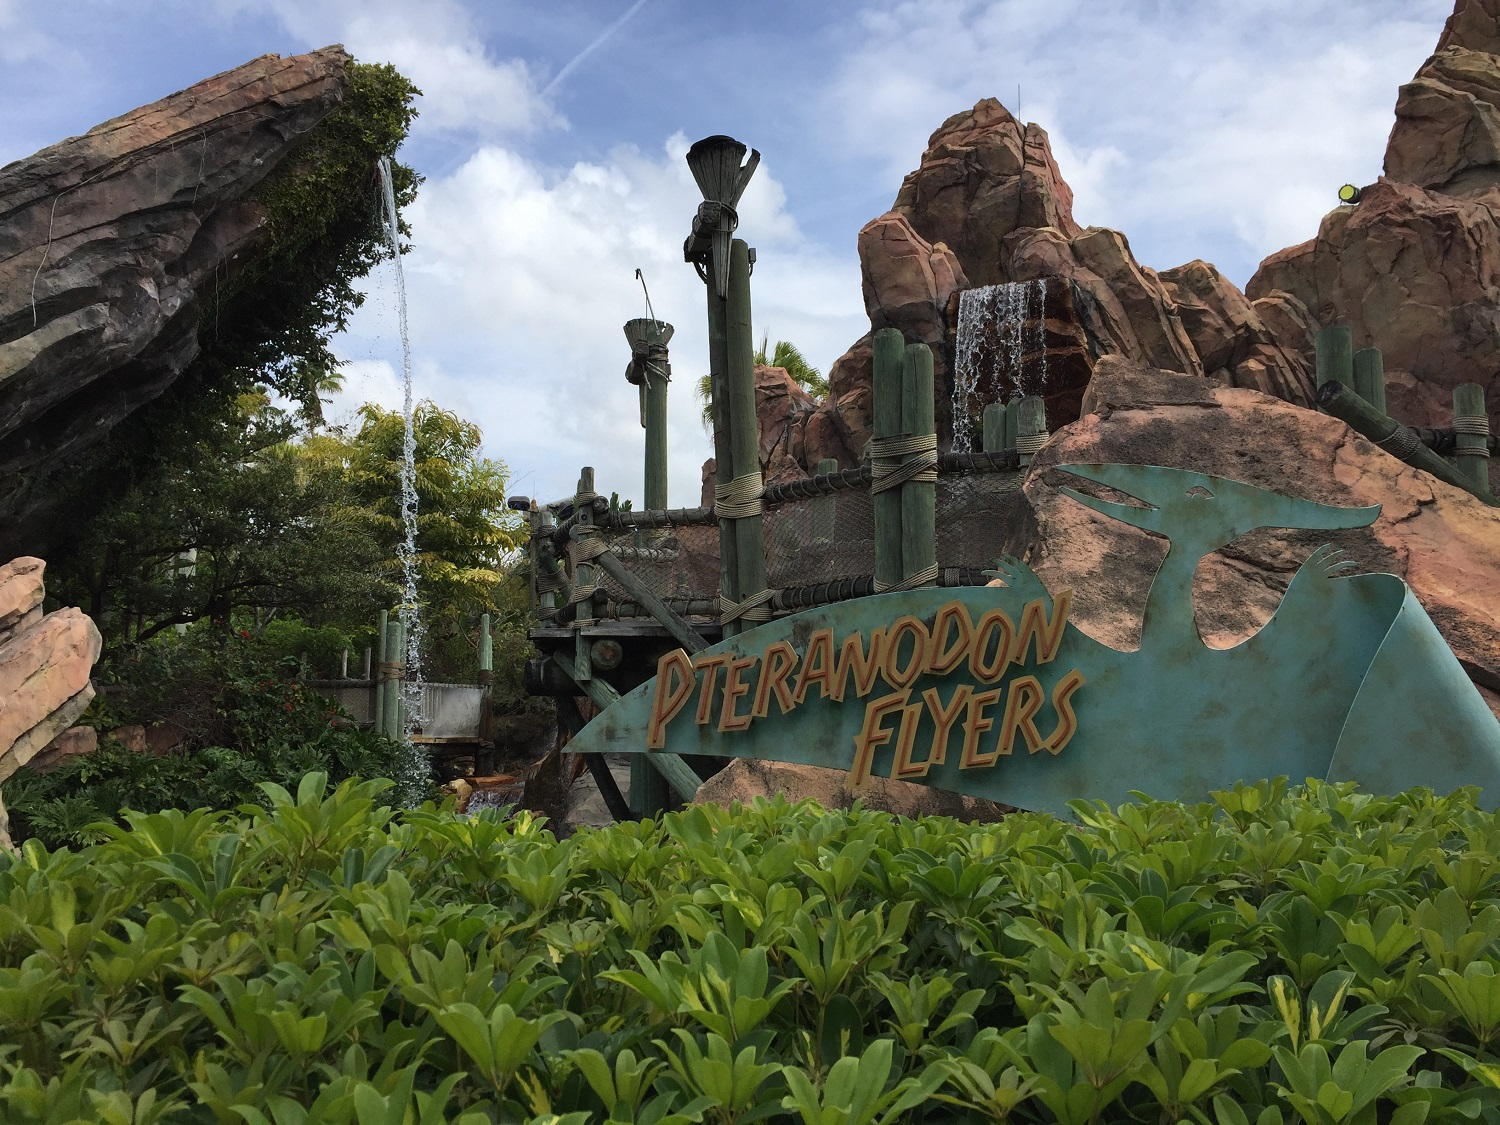 Look for Pteranodon Flyers, an aerial coaster ride, in Camp Jurassic.